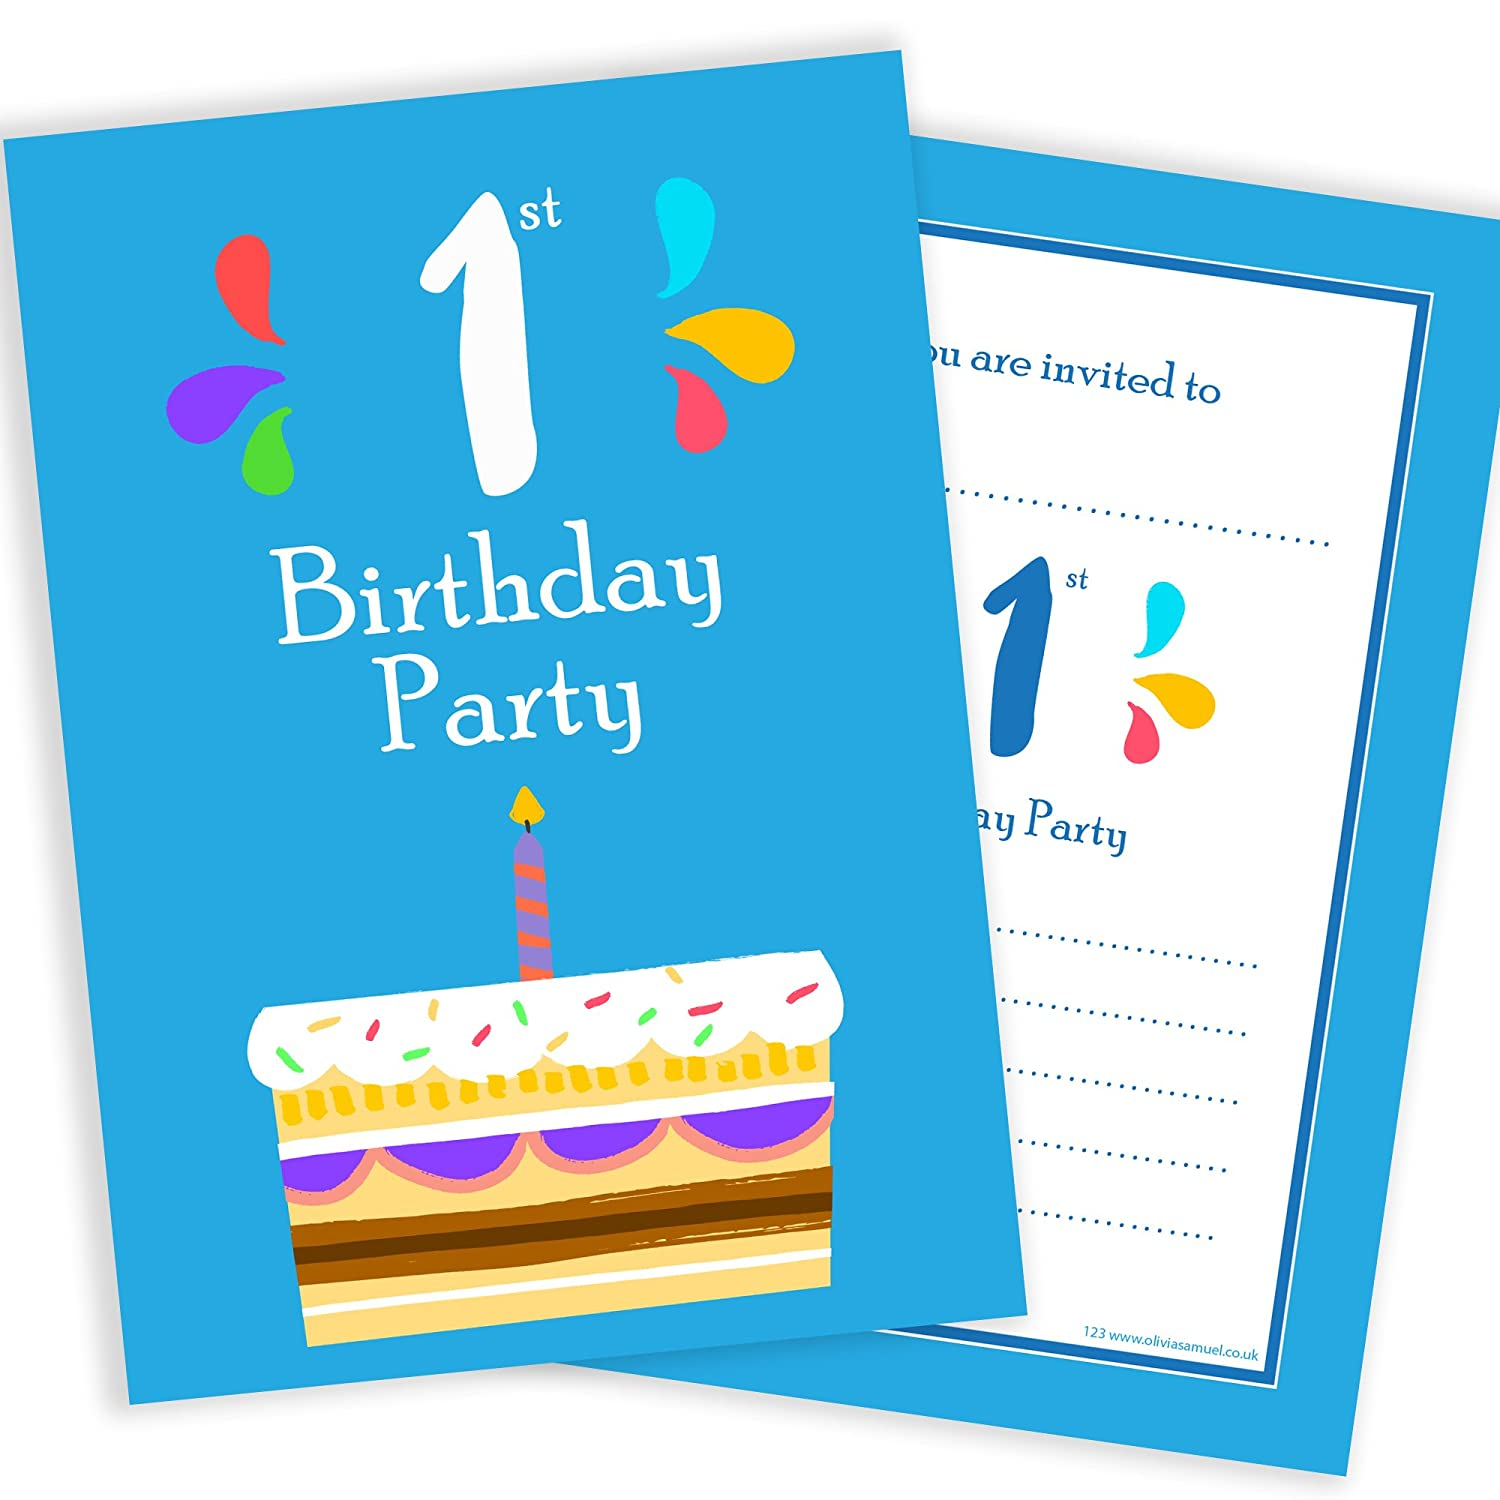 1st Birthday Party Invitations - 1 Candle Blue Cake Design - A6 Postcard Size with envelopes (Pack of 10) Olivia Samuel